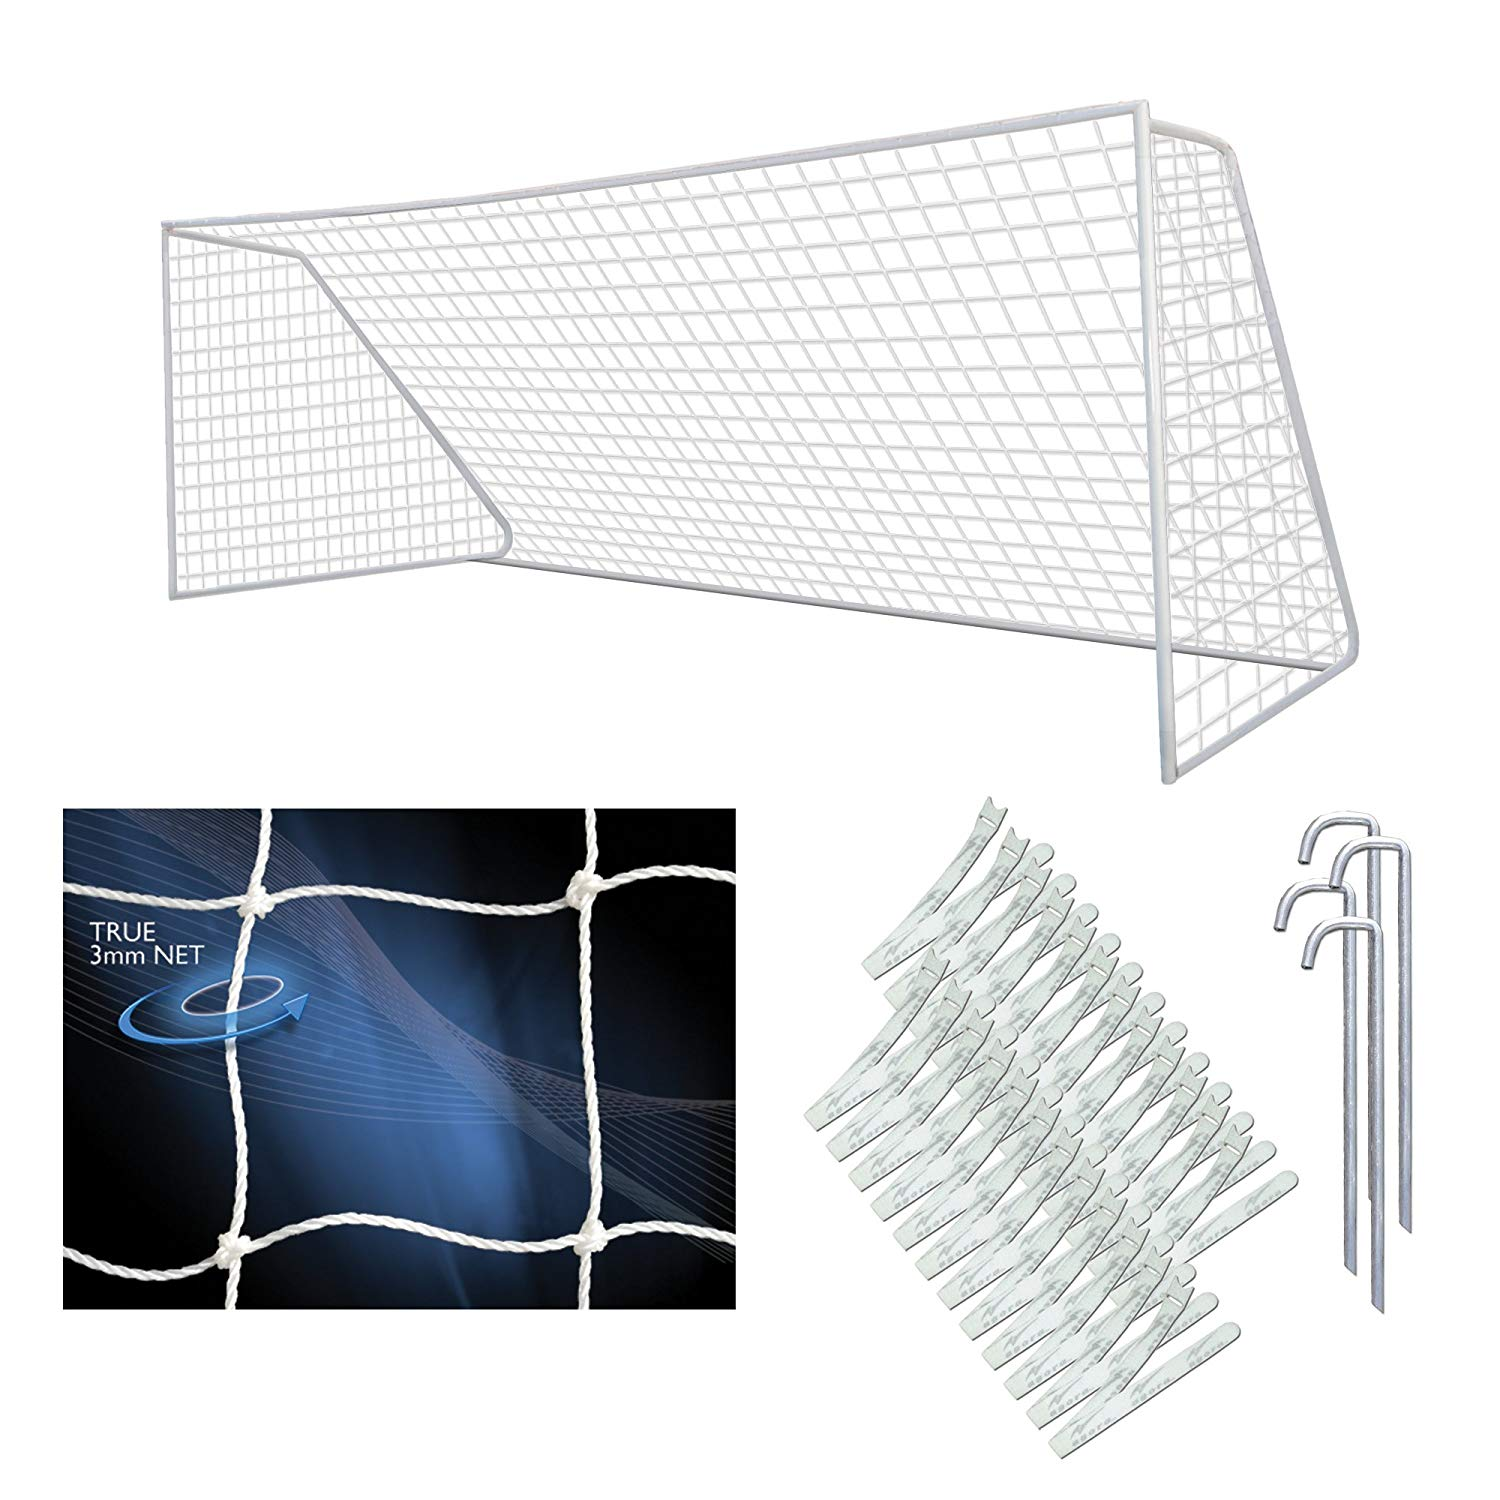 6d3af8278 Get Quotations · AGORA Semi-Pro 7'x21' Youth Portable Soccer Goal Kit